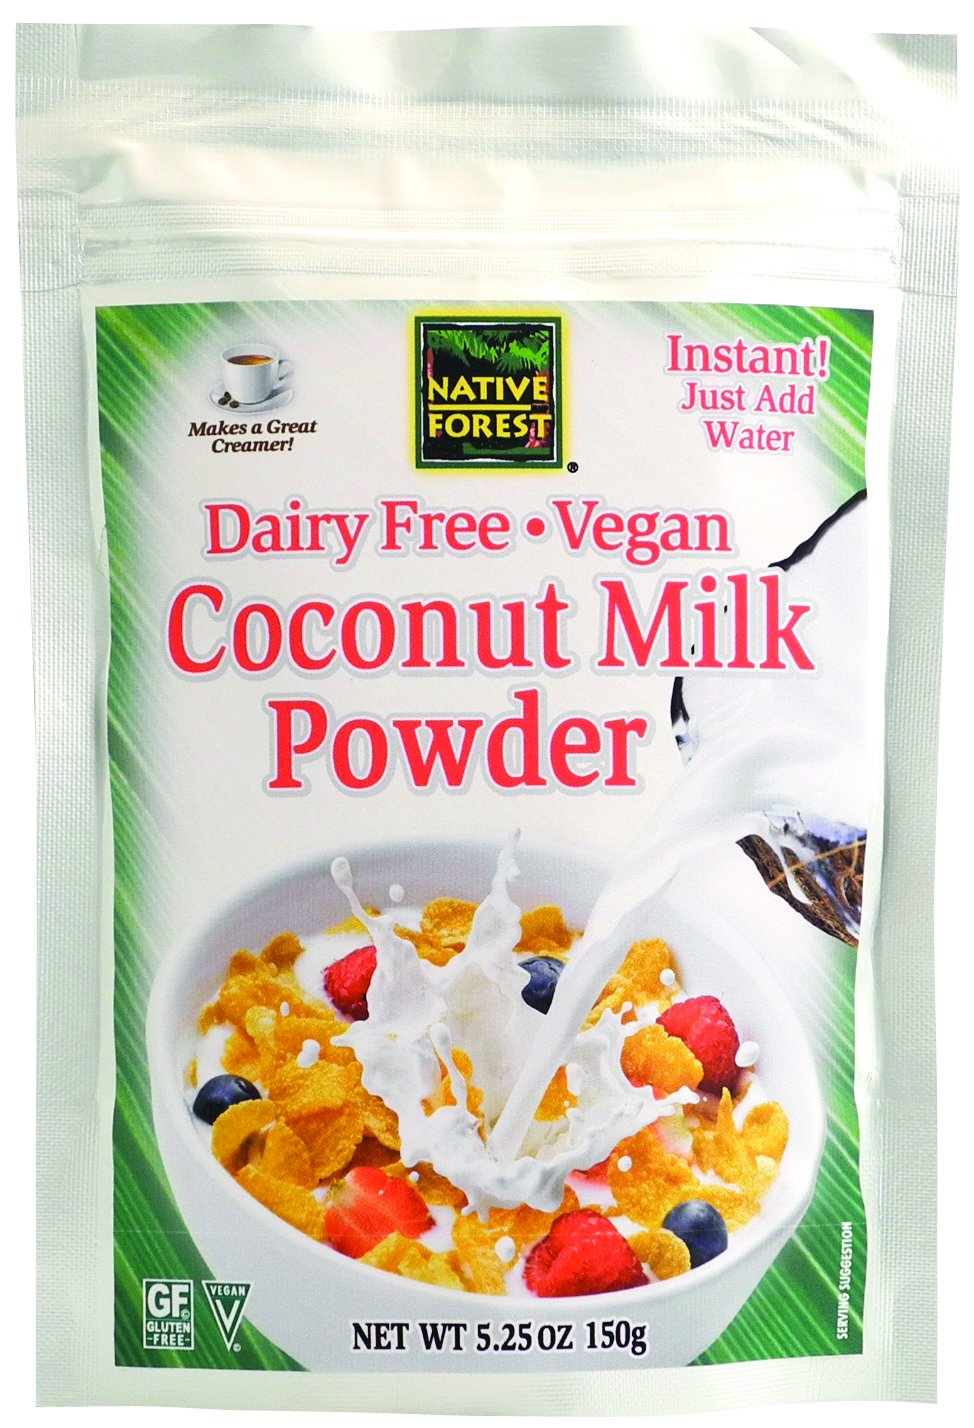 Native Forest Coconut Milk Powder, 5.25 Ounce Bag by Native Forest (Image #1)